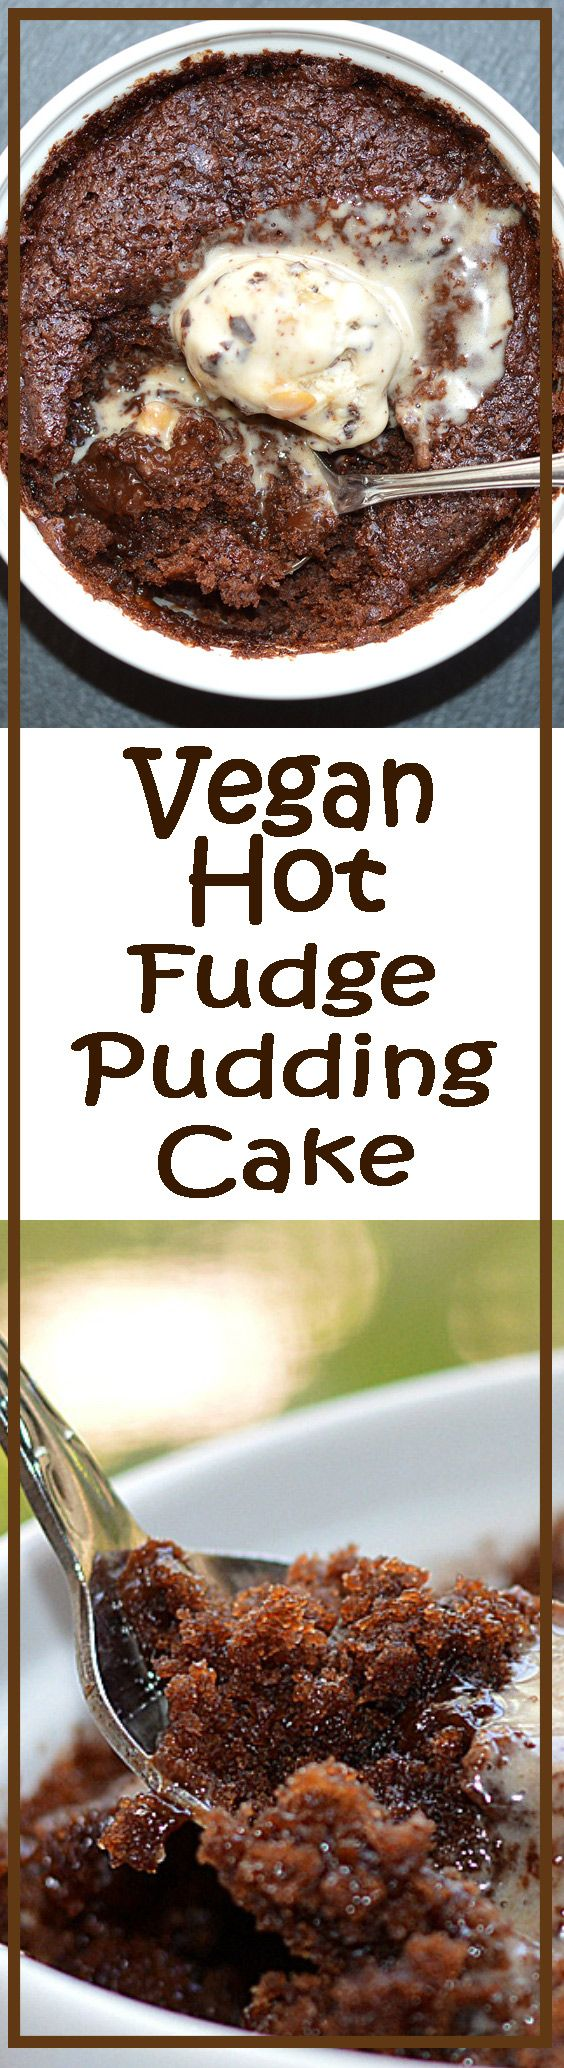 Hot Fudge Pudding Cake - inspired by an old Hershey's recipe and surprisingly, required few substitutions as it contained no eggs.  You know those oh-so-popular molten chocolate lava cakes? This is far much better than dessert